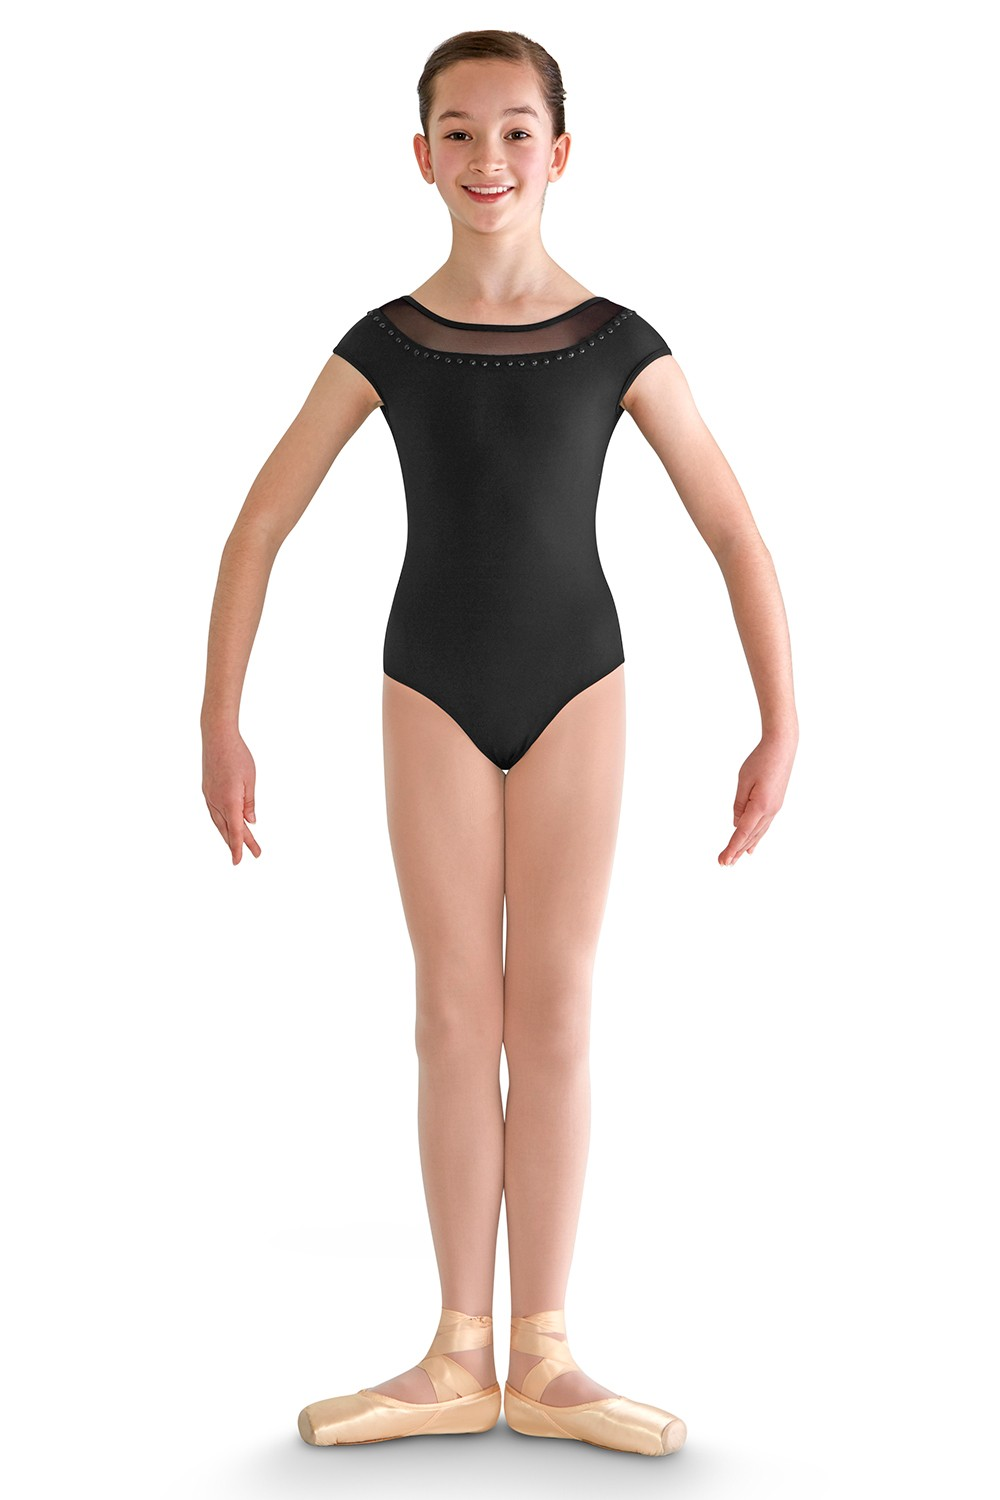 Yoked Cap Sleeve Leo Children's Dance Leotards